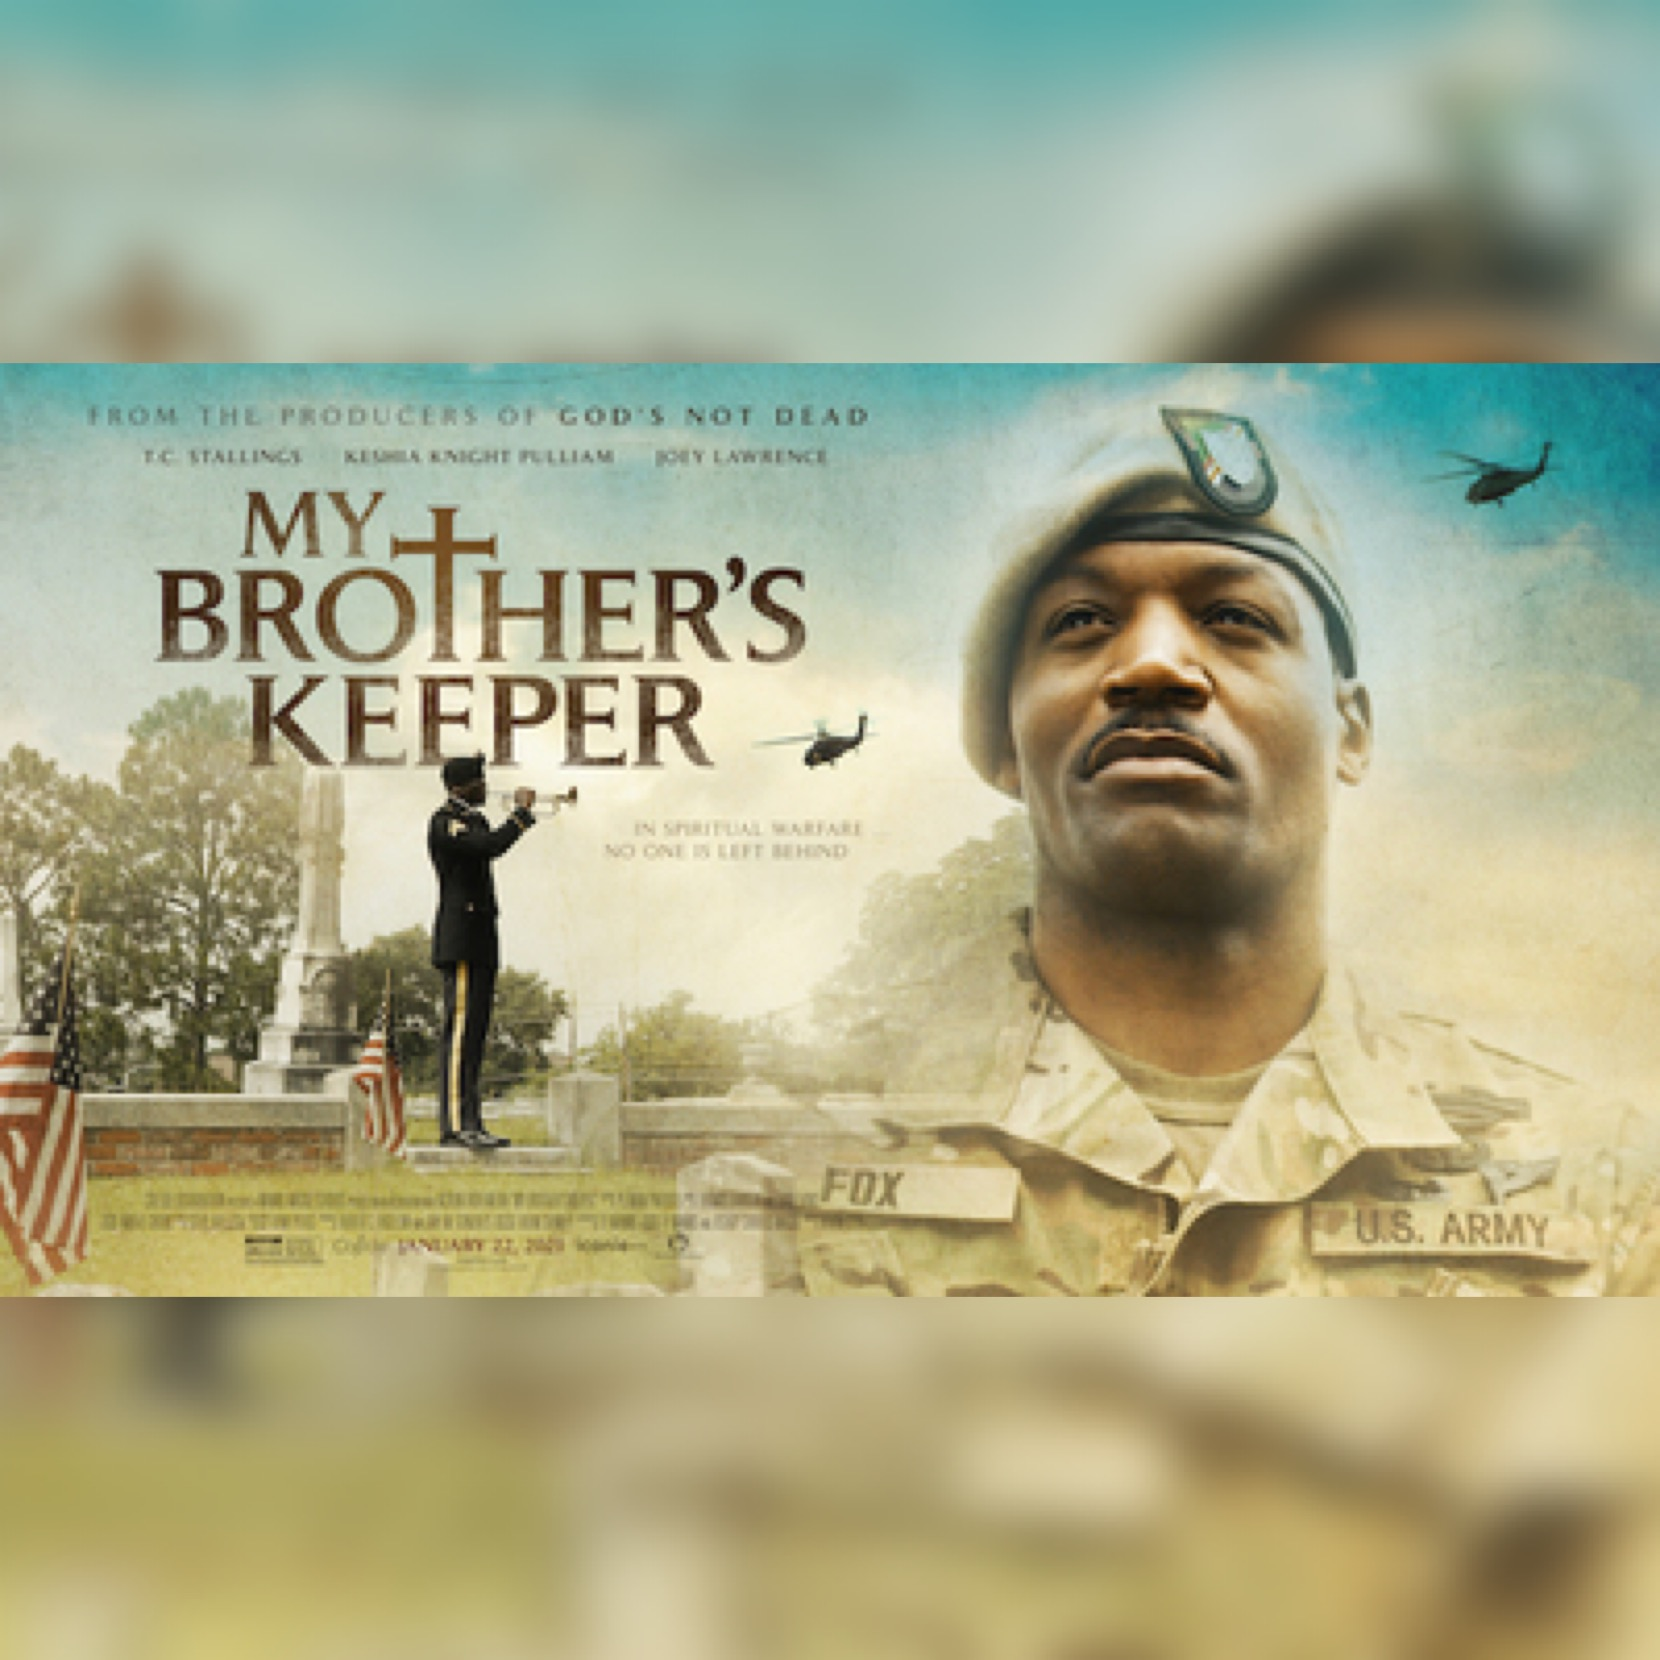 My Brother's Keeper image by Collide Distribution for use by 360 Magazine